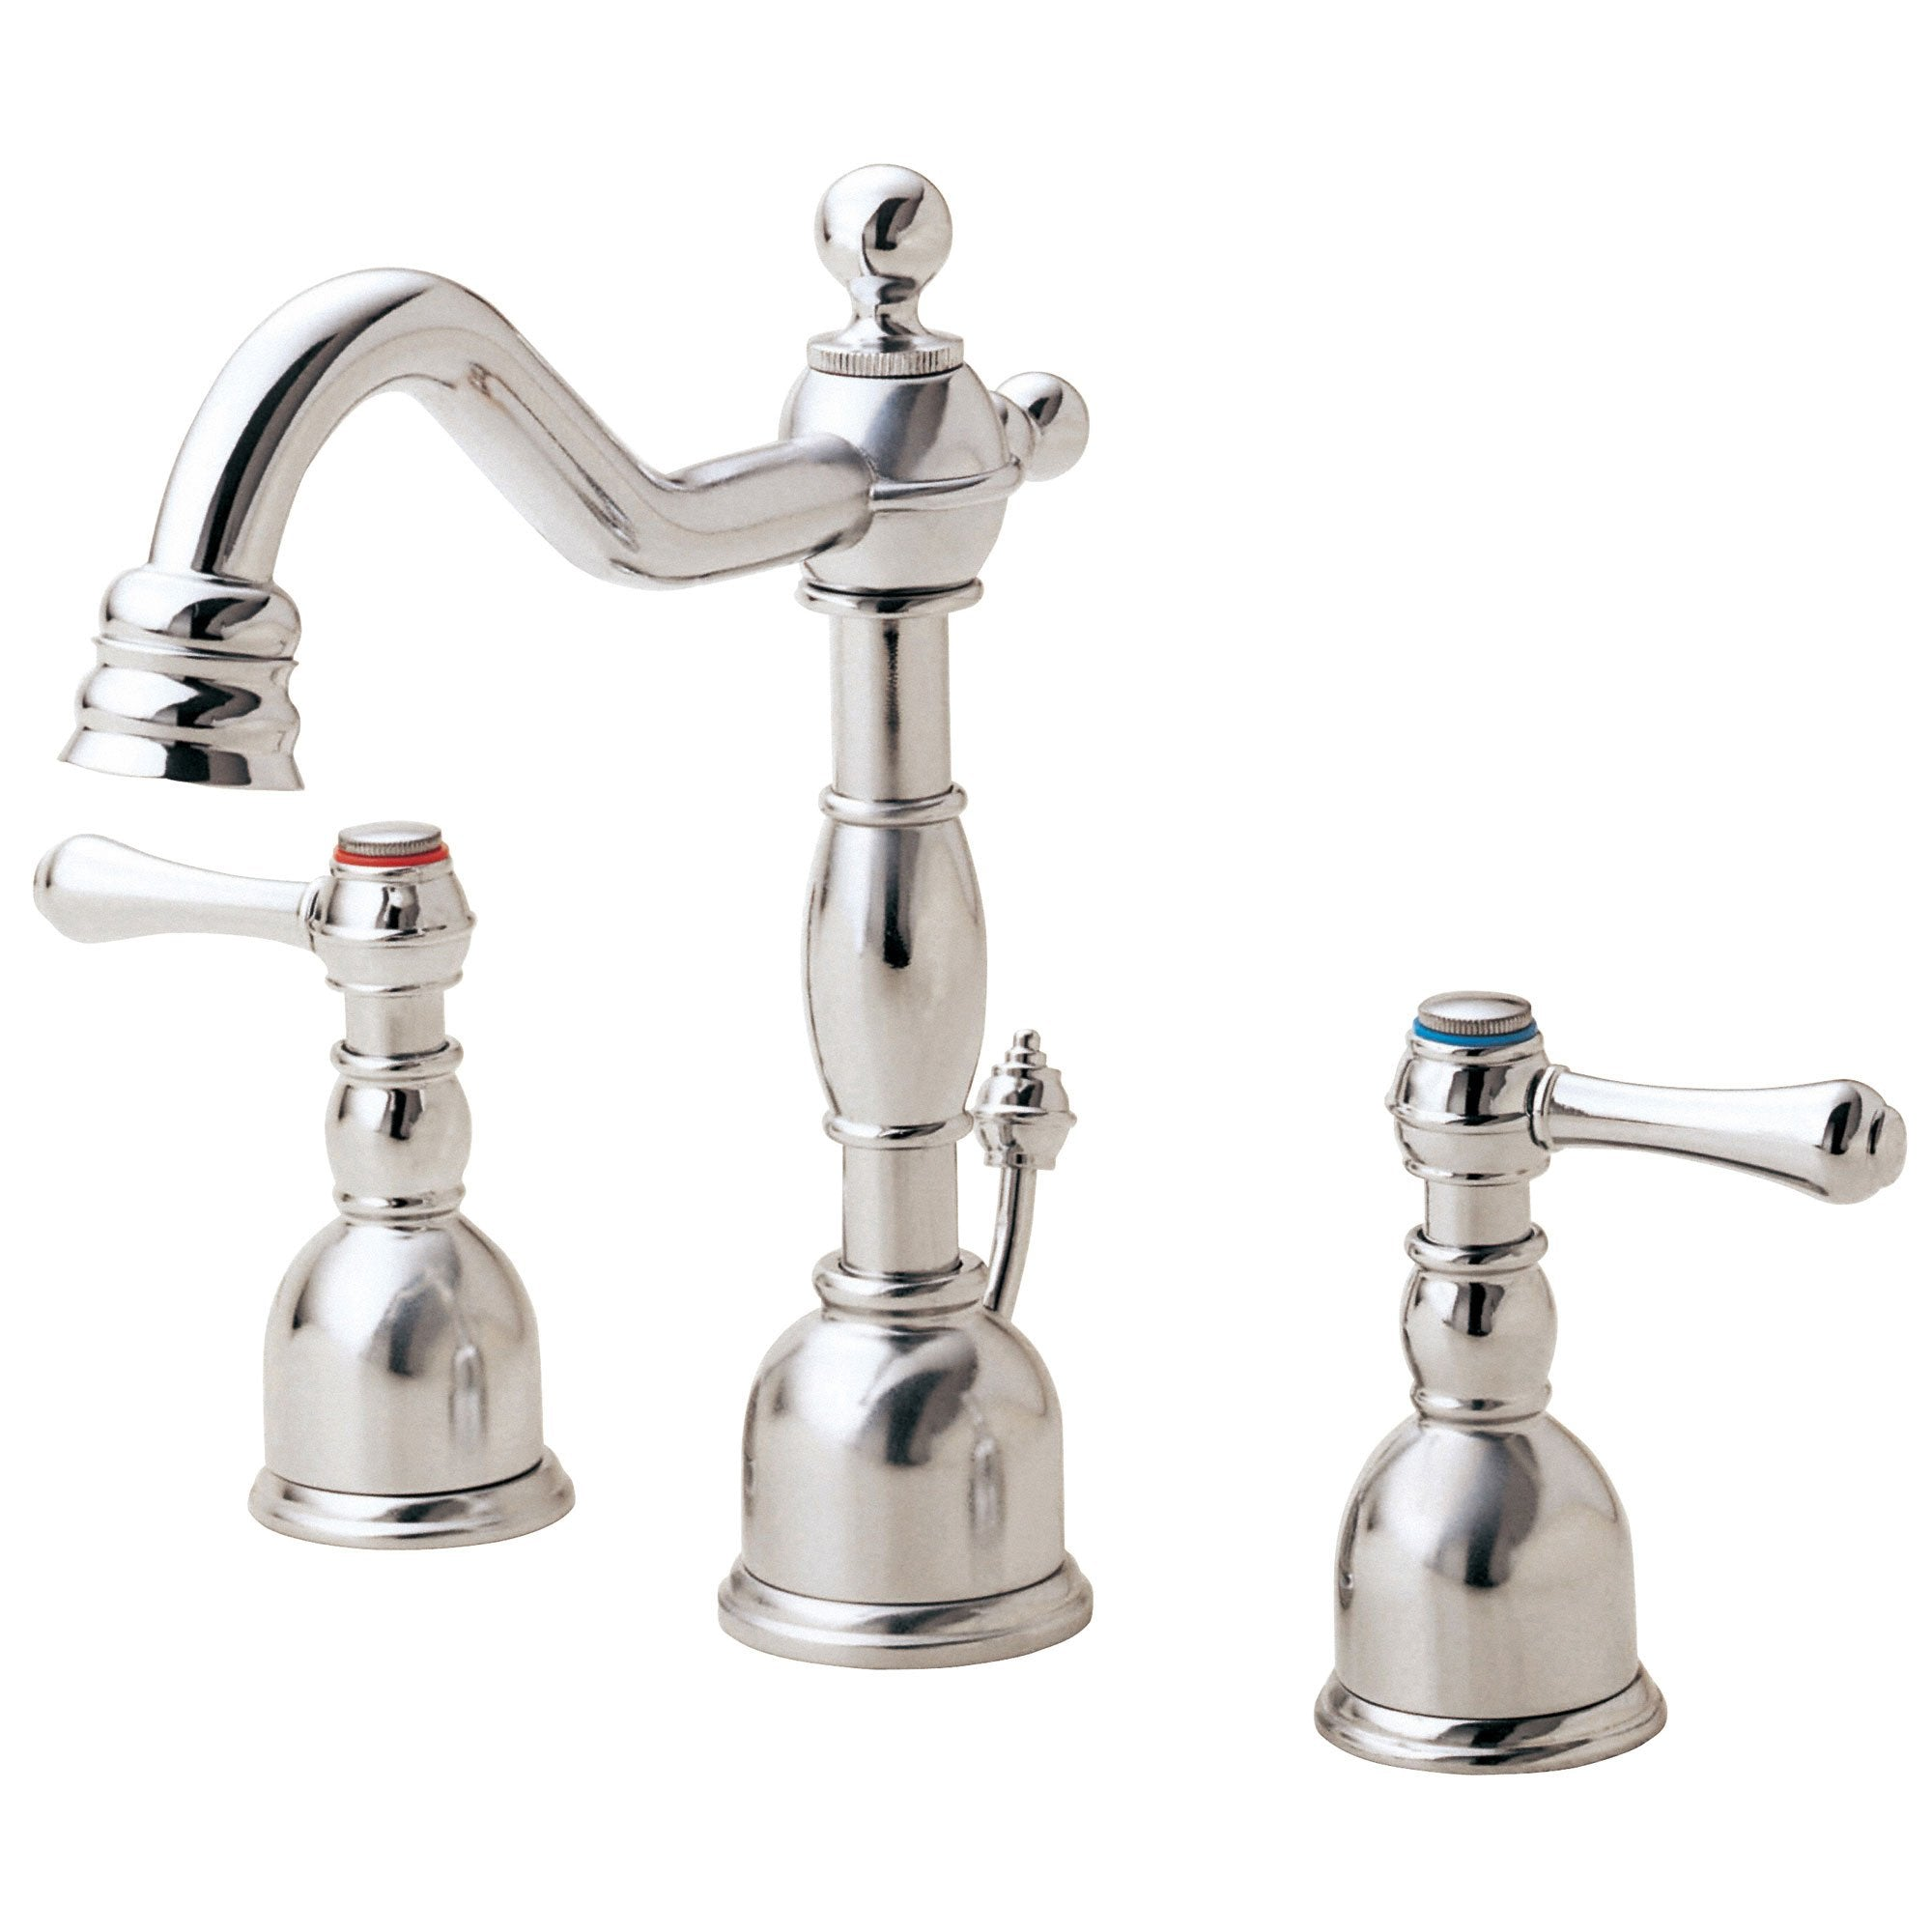 Danze Opulence Polished Nickel Traditional Mini-Widespread Bathroom Sink Faucet